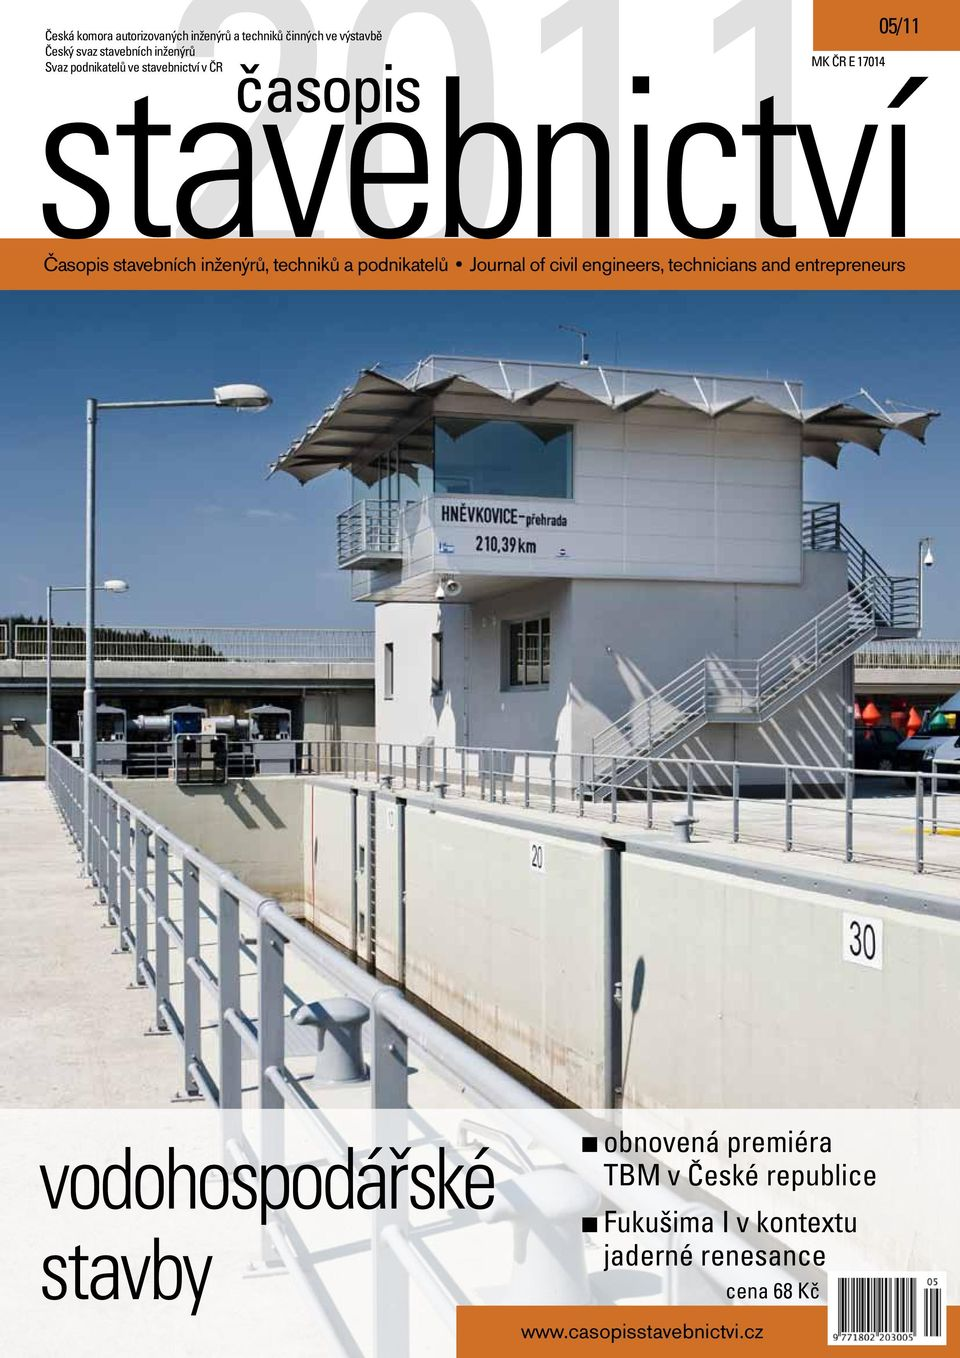 podnikatelů Journal of civil engineers, technicians and entrepreneurs vodohospodářské stavby obnovená